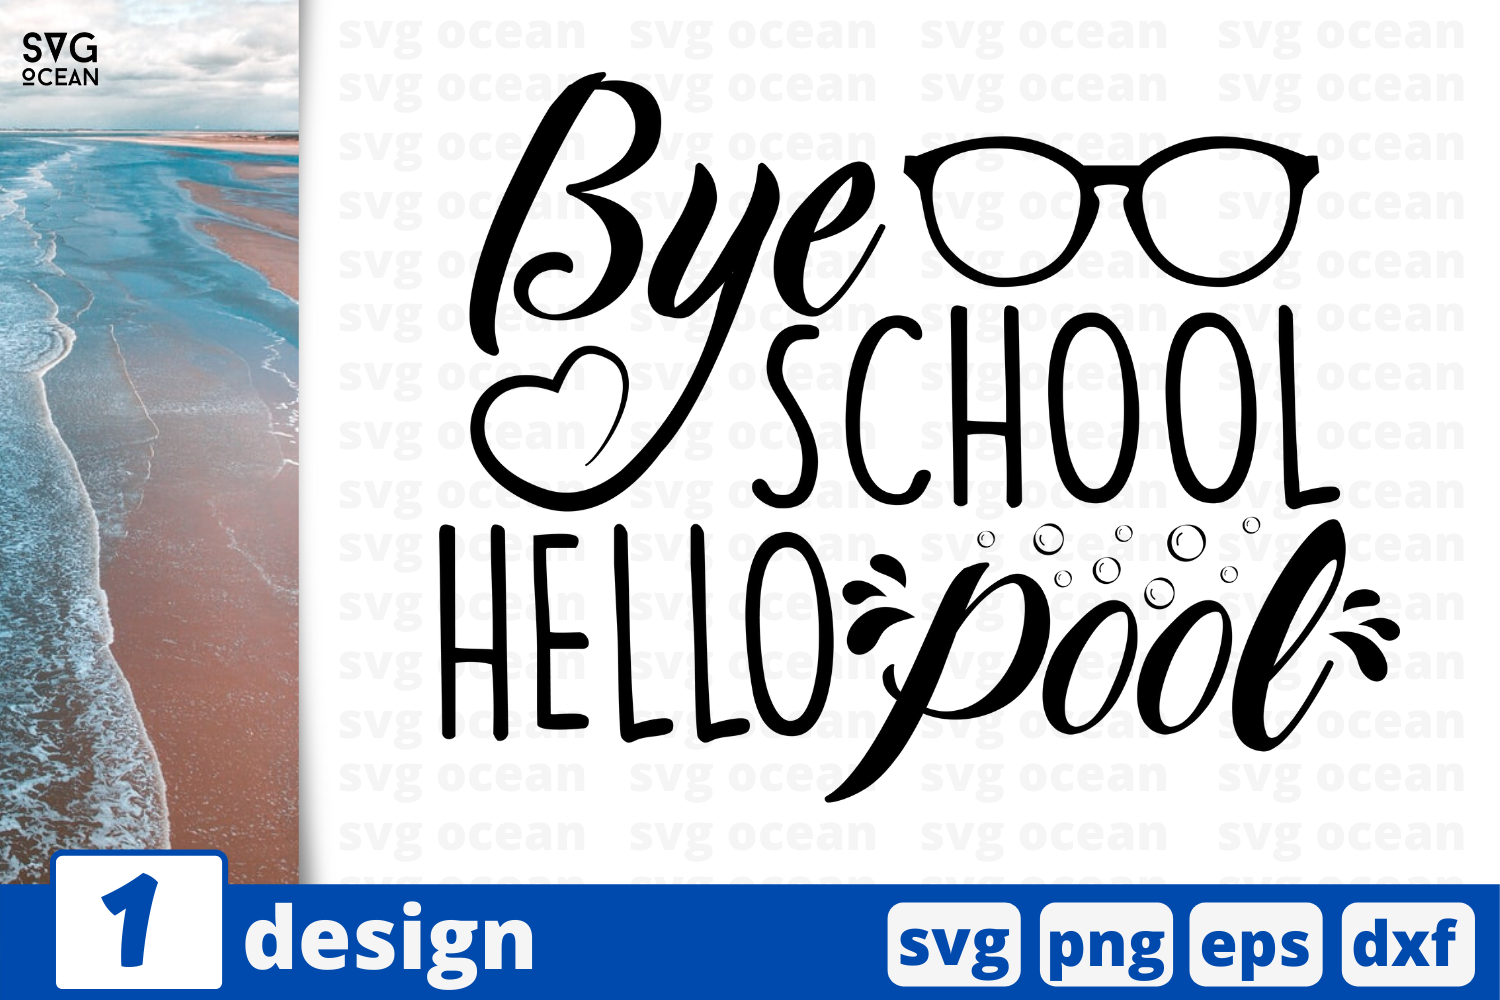 Download Free Bye School Hello Pool Graphic By Svgocean Creative Fabrica for Cricut Explore, Silhouette and other cutting machines.